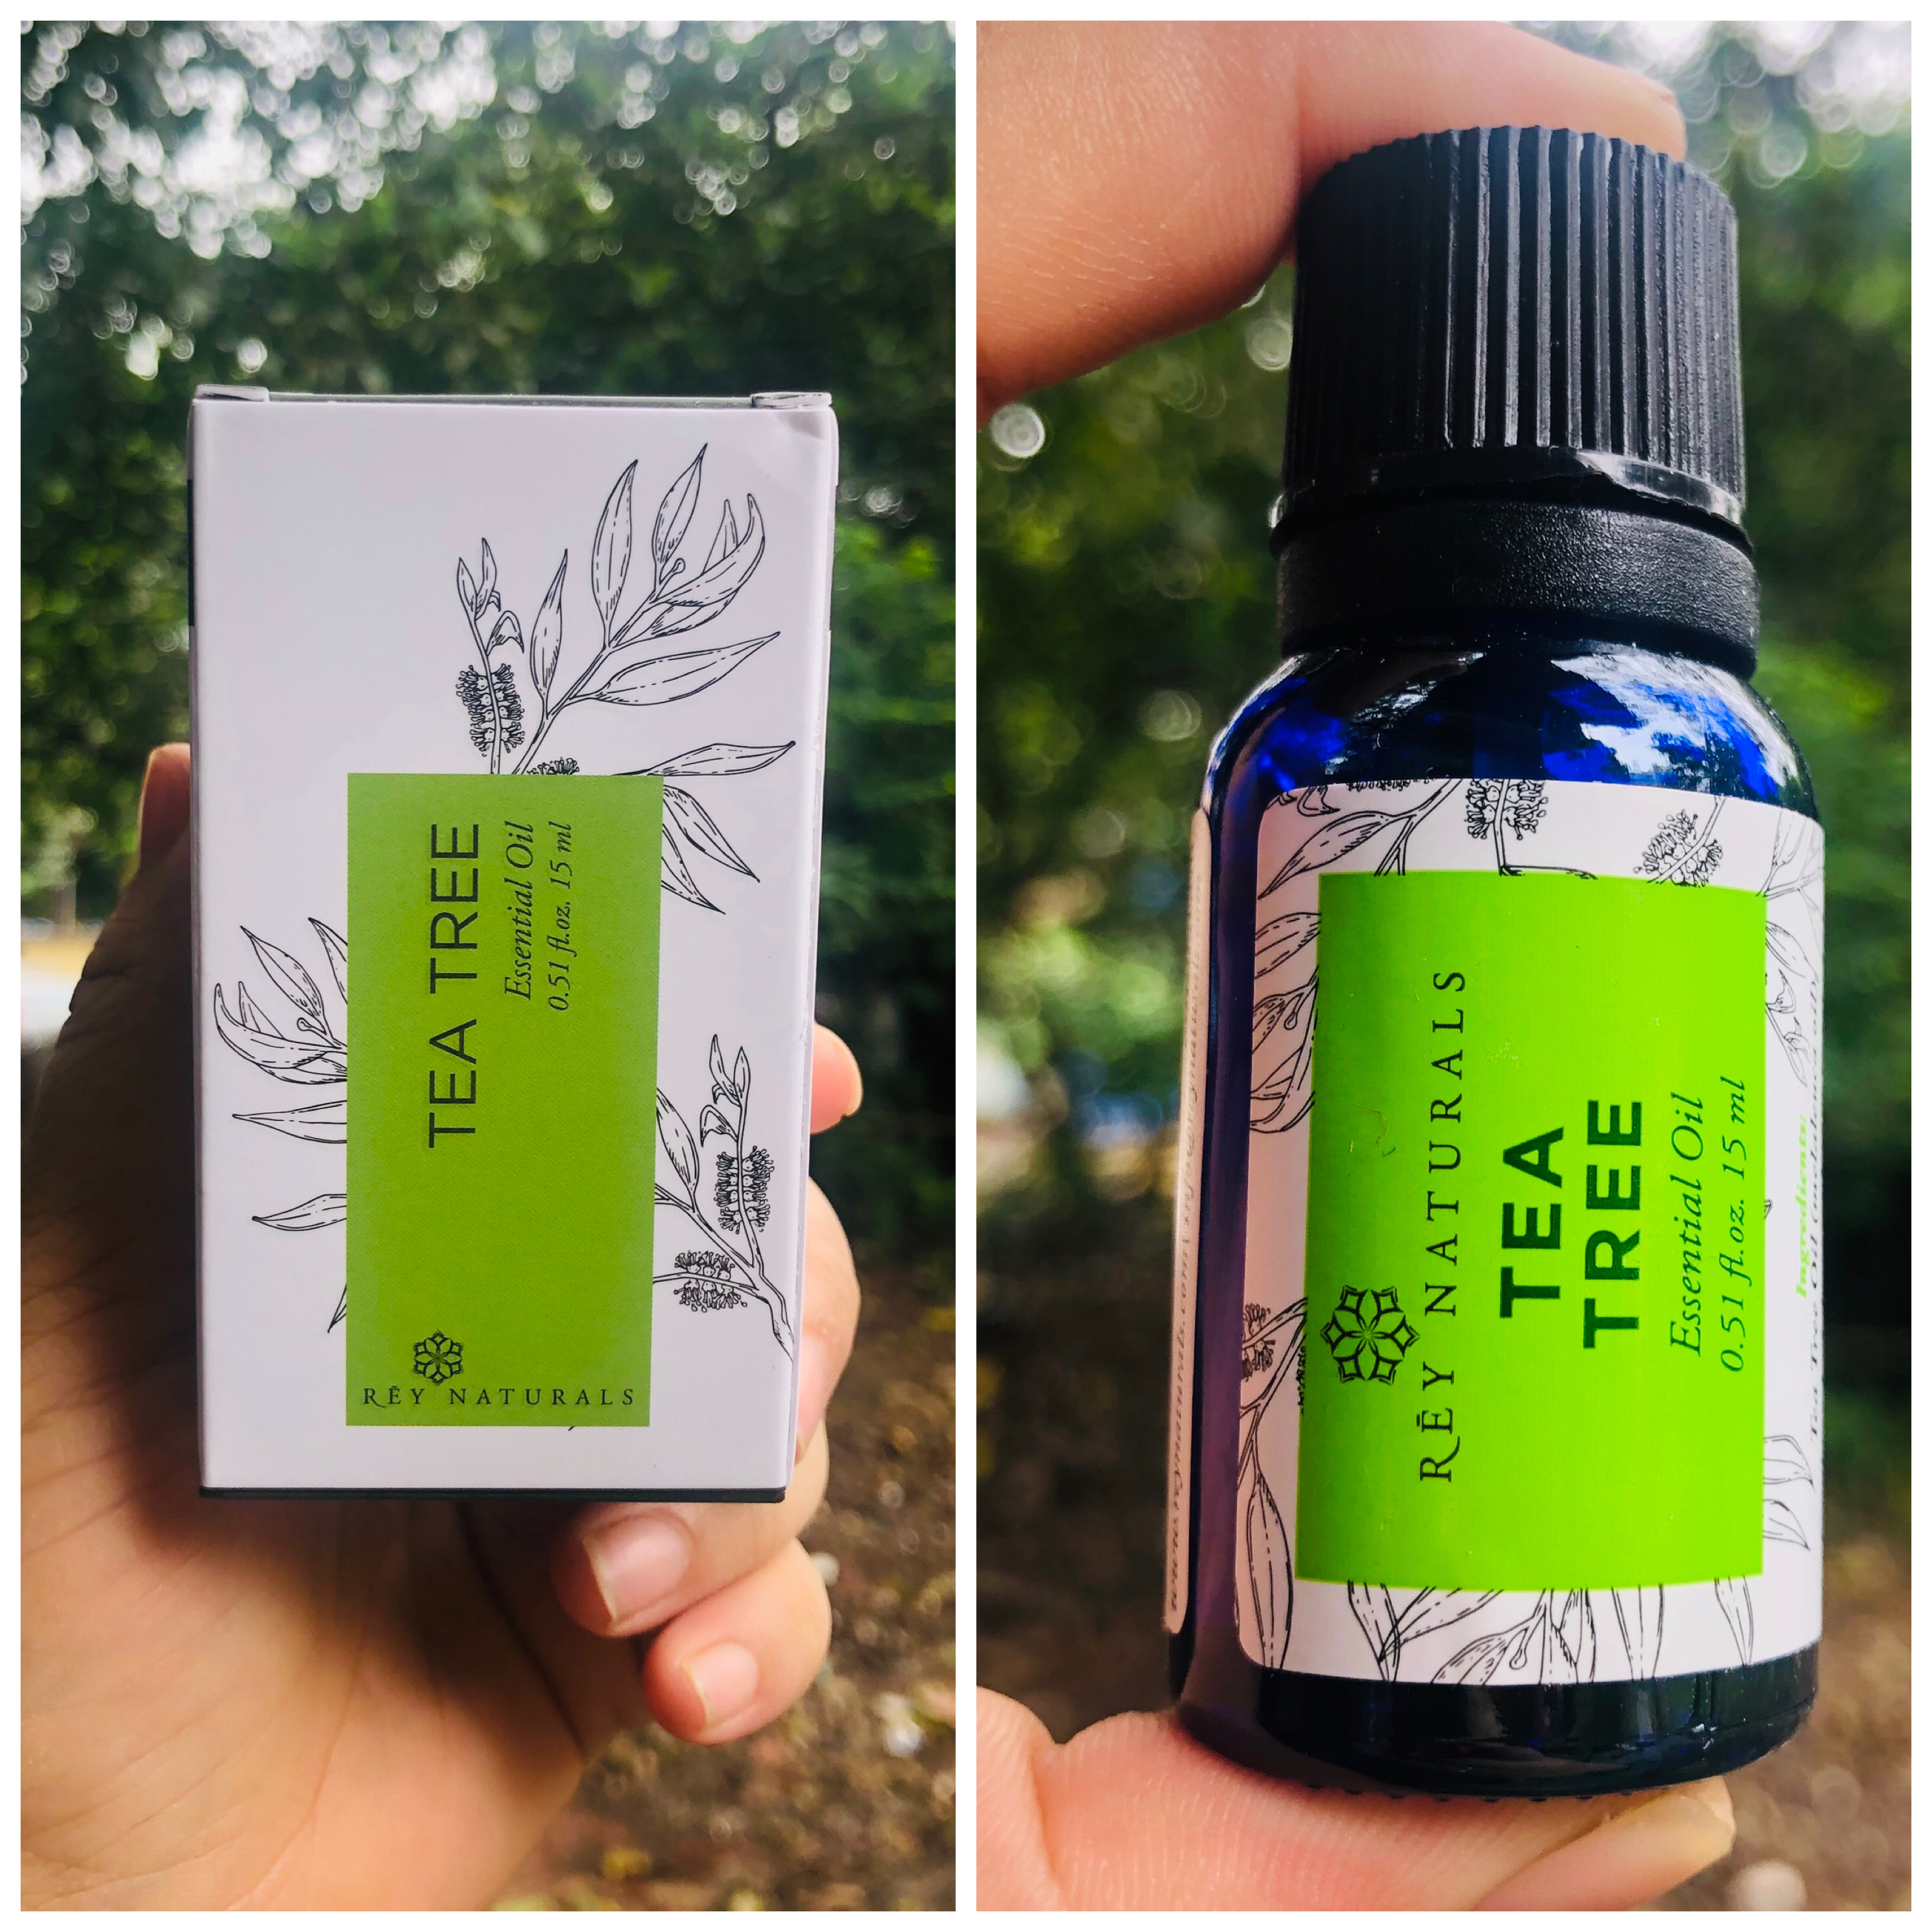 Rey Naturals Tea Tree Essential Oil-Works wonder for skin and hair-By rupalimehra186-2